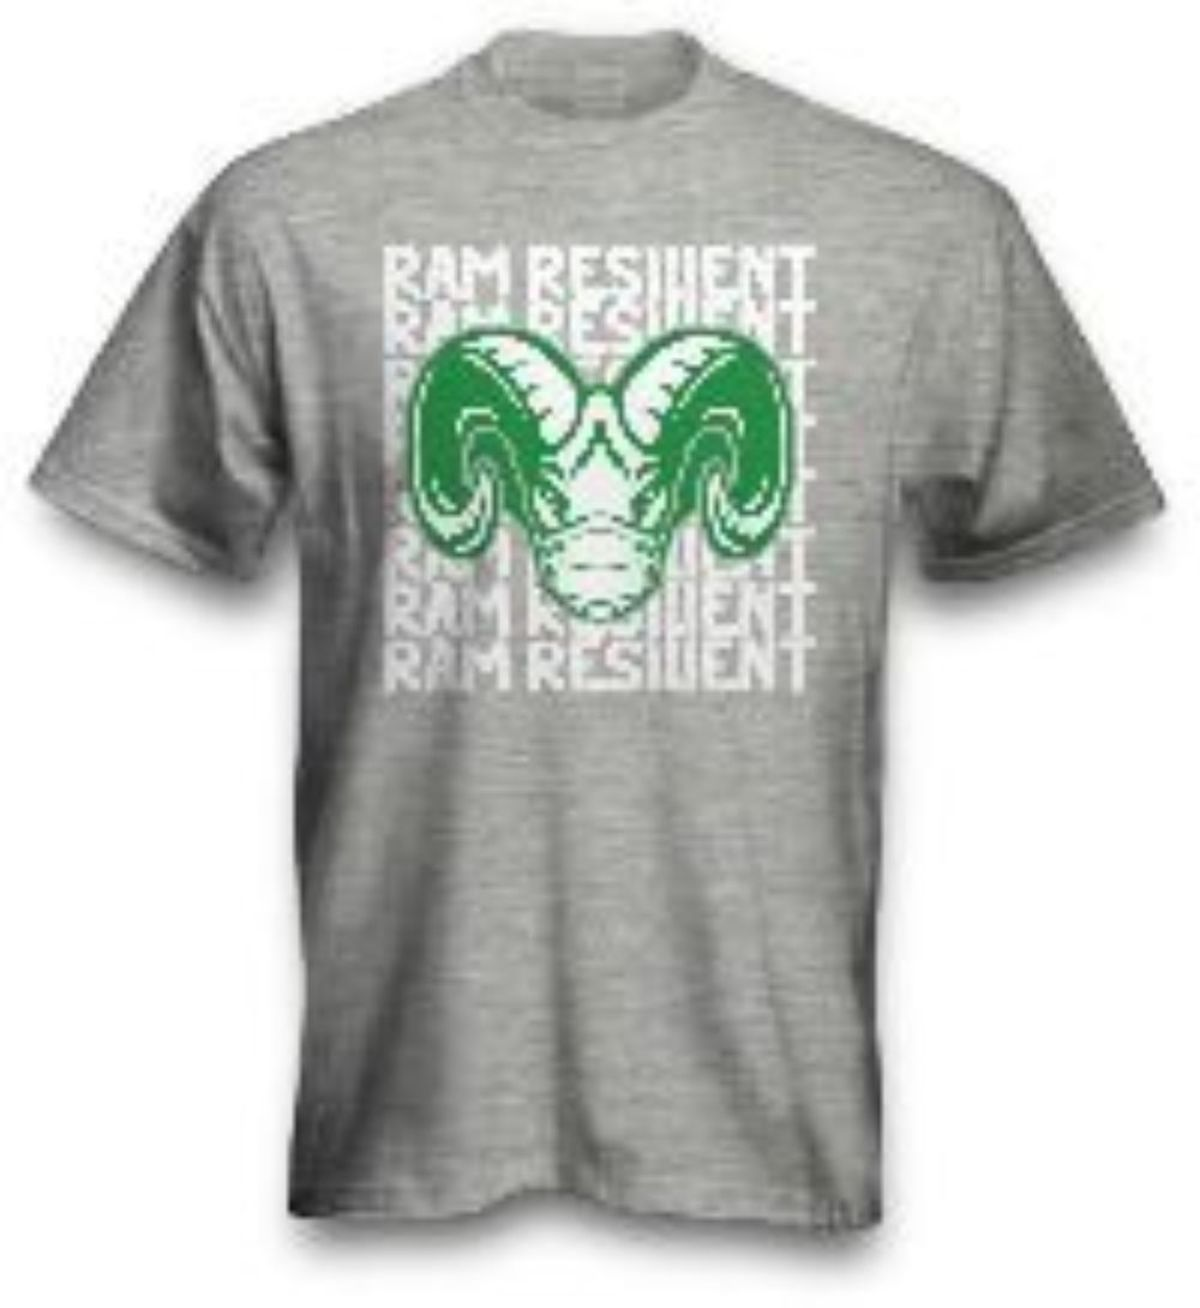 NEW! Ram Resilient Soft Style T-shirt